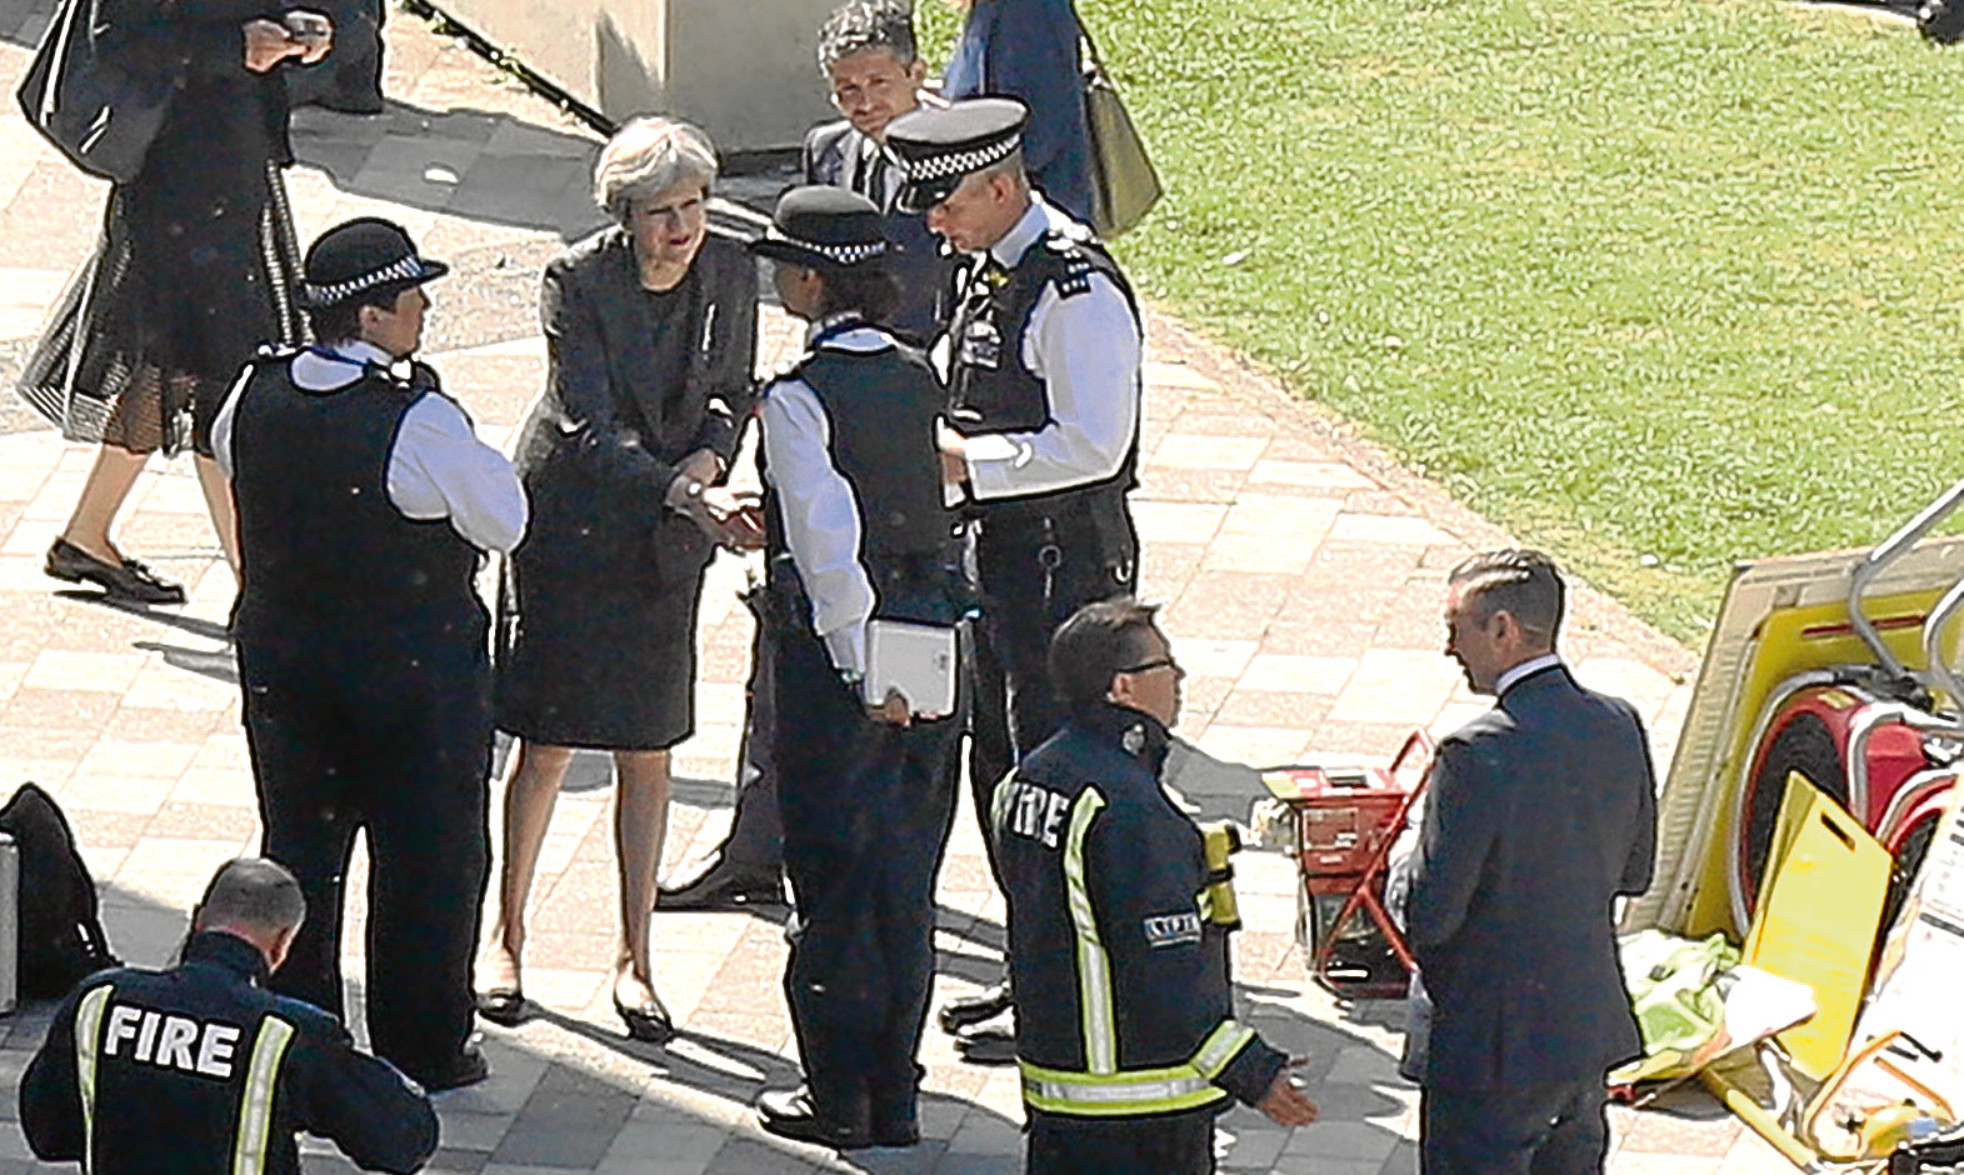 Theresa May during her much-criticised visit to Grenfell Towers.